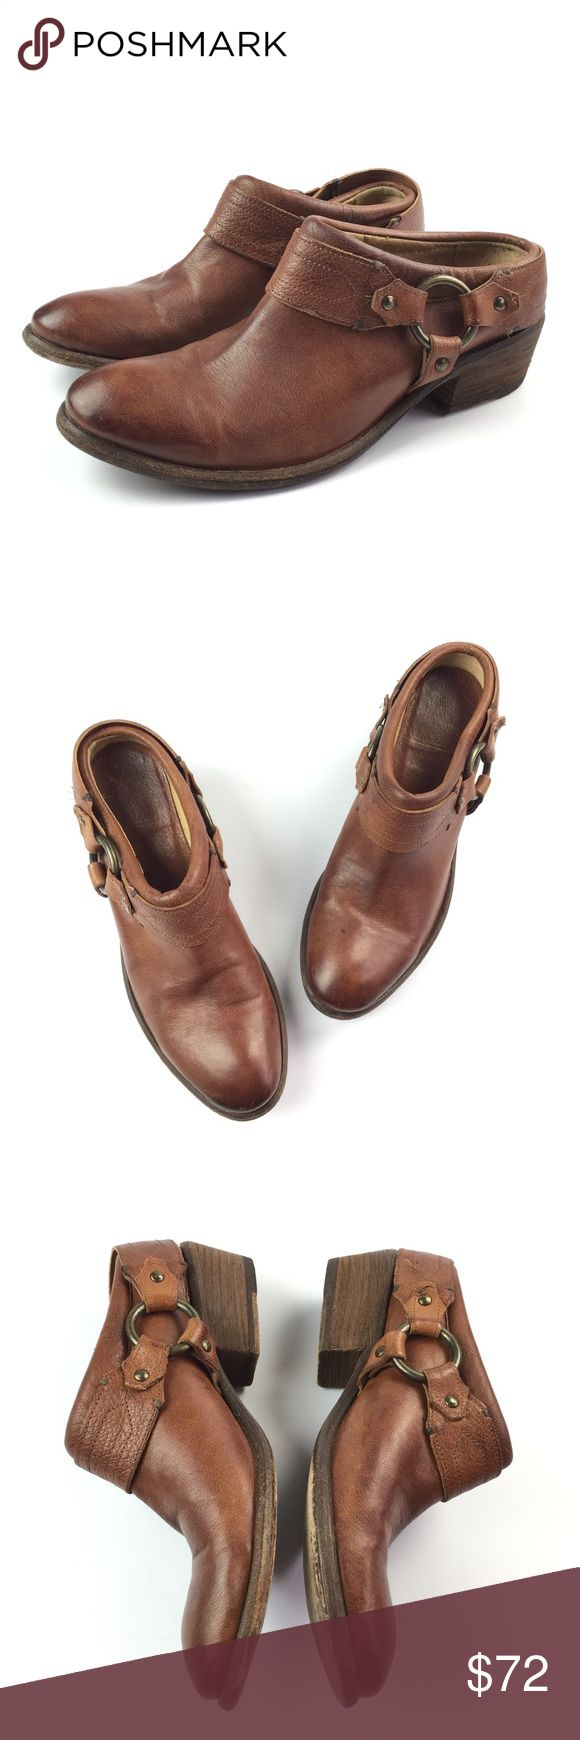 """Frye Brown Carson Clog Harness Booties Frye Carson clog bootie shoes in brown leather. Condition: Good. Broken in. Size 8 B Apx: 1 3/4"""" heel. Frye Shoes Ankle Boots & Booties"""